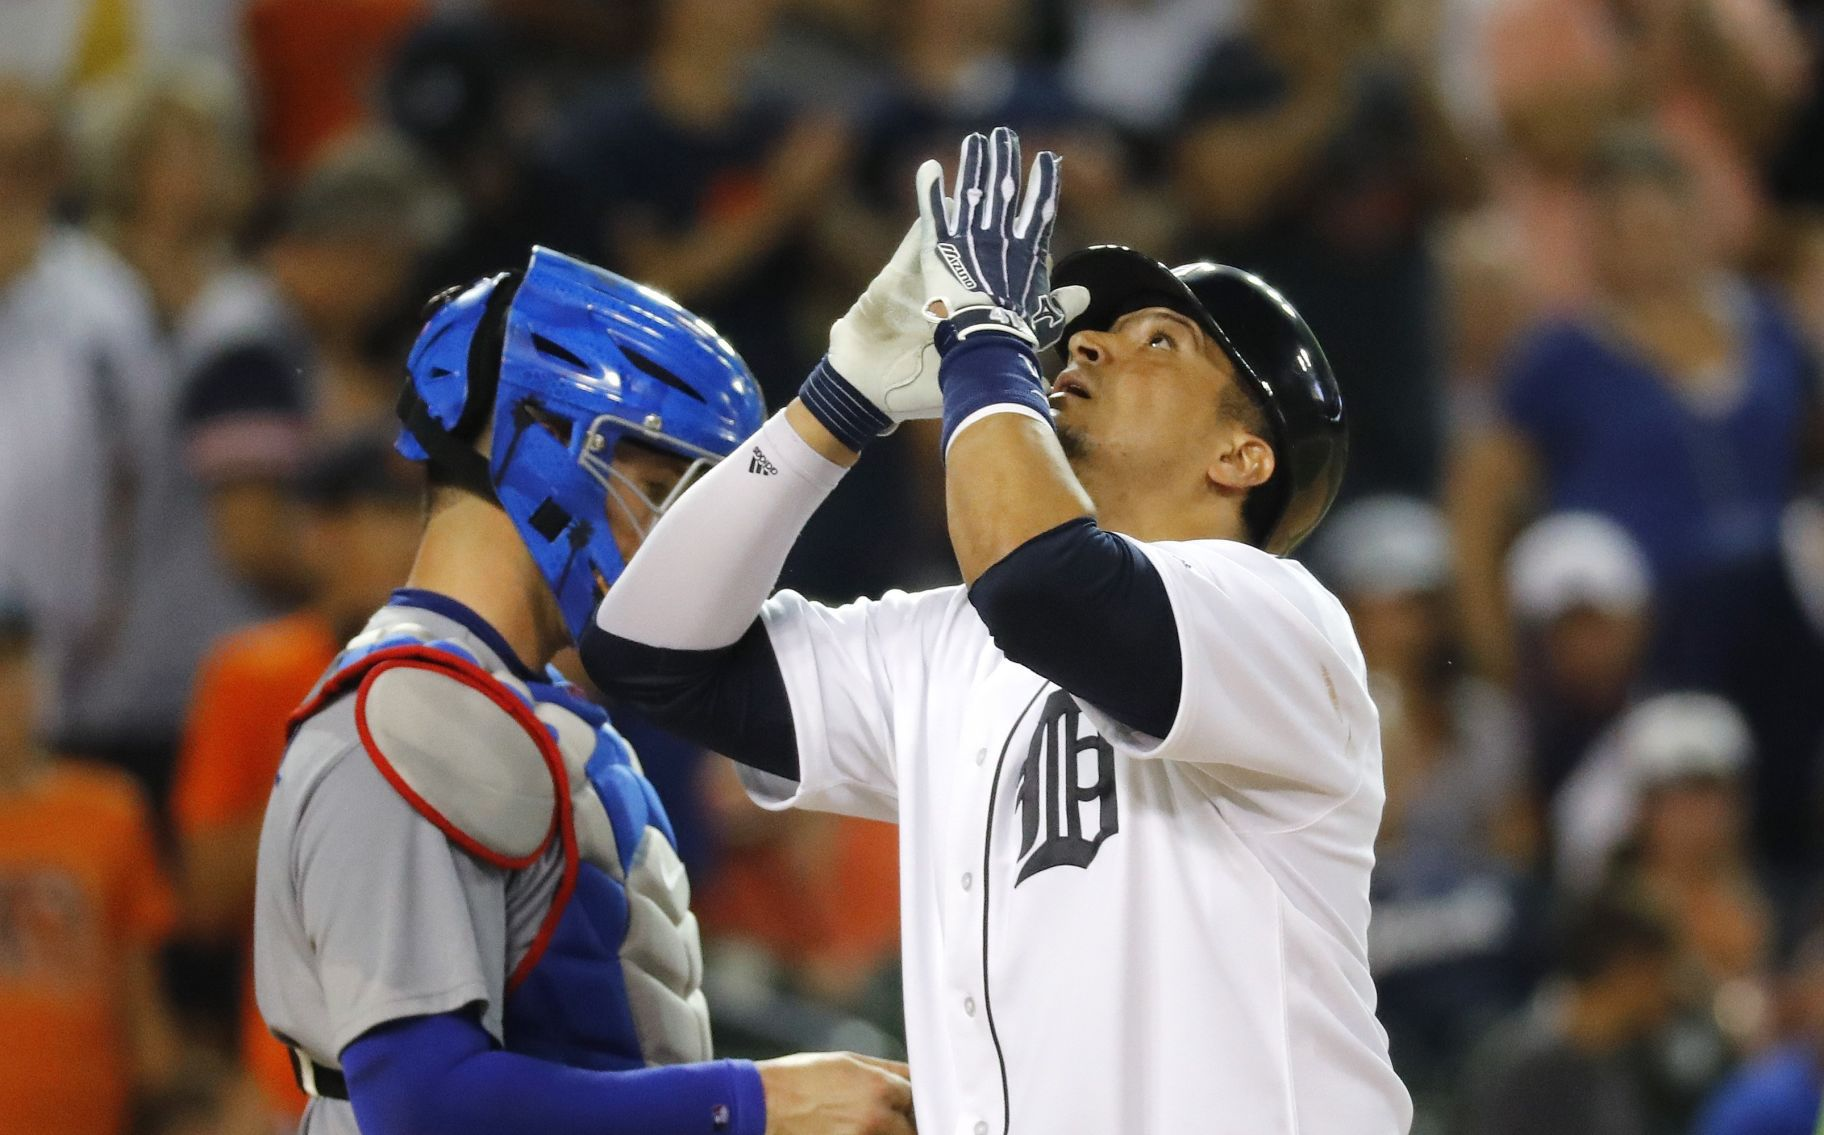 Tigers DH Victor Martinez sidelined again with irregular heartbeat